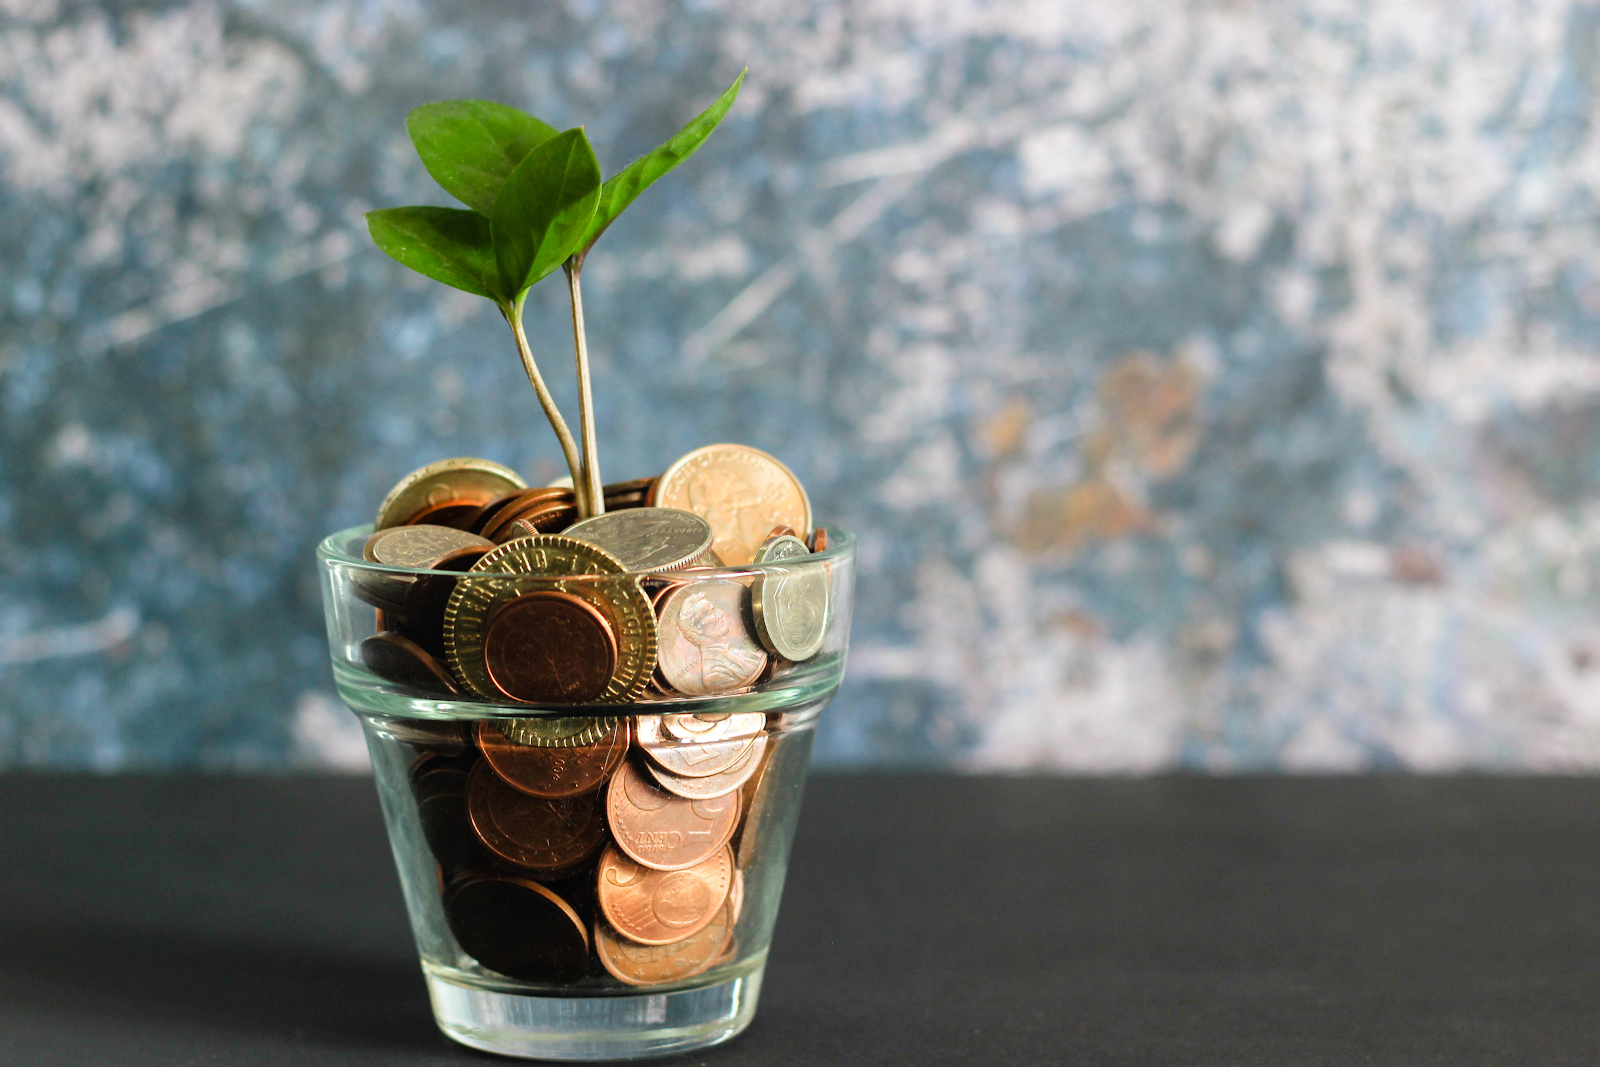 Image of plant growing out of bowl of coins